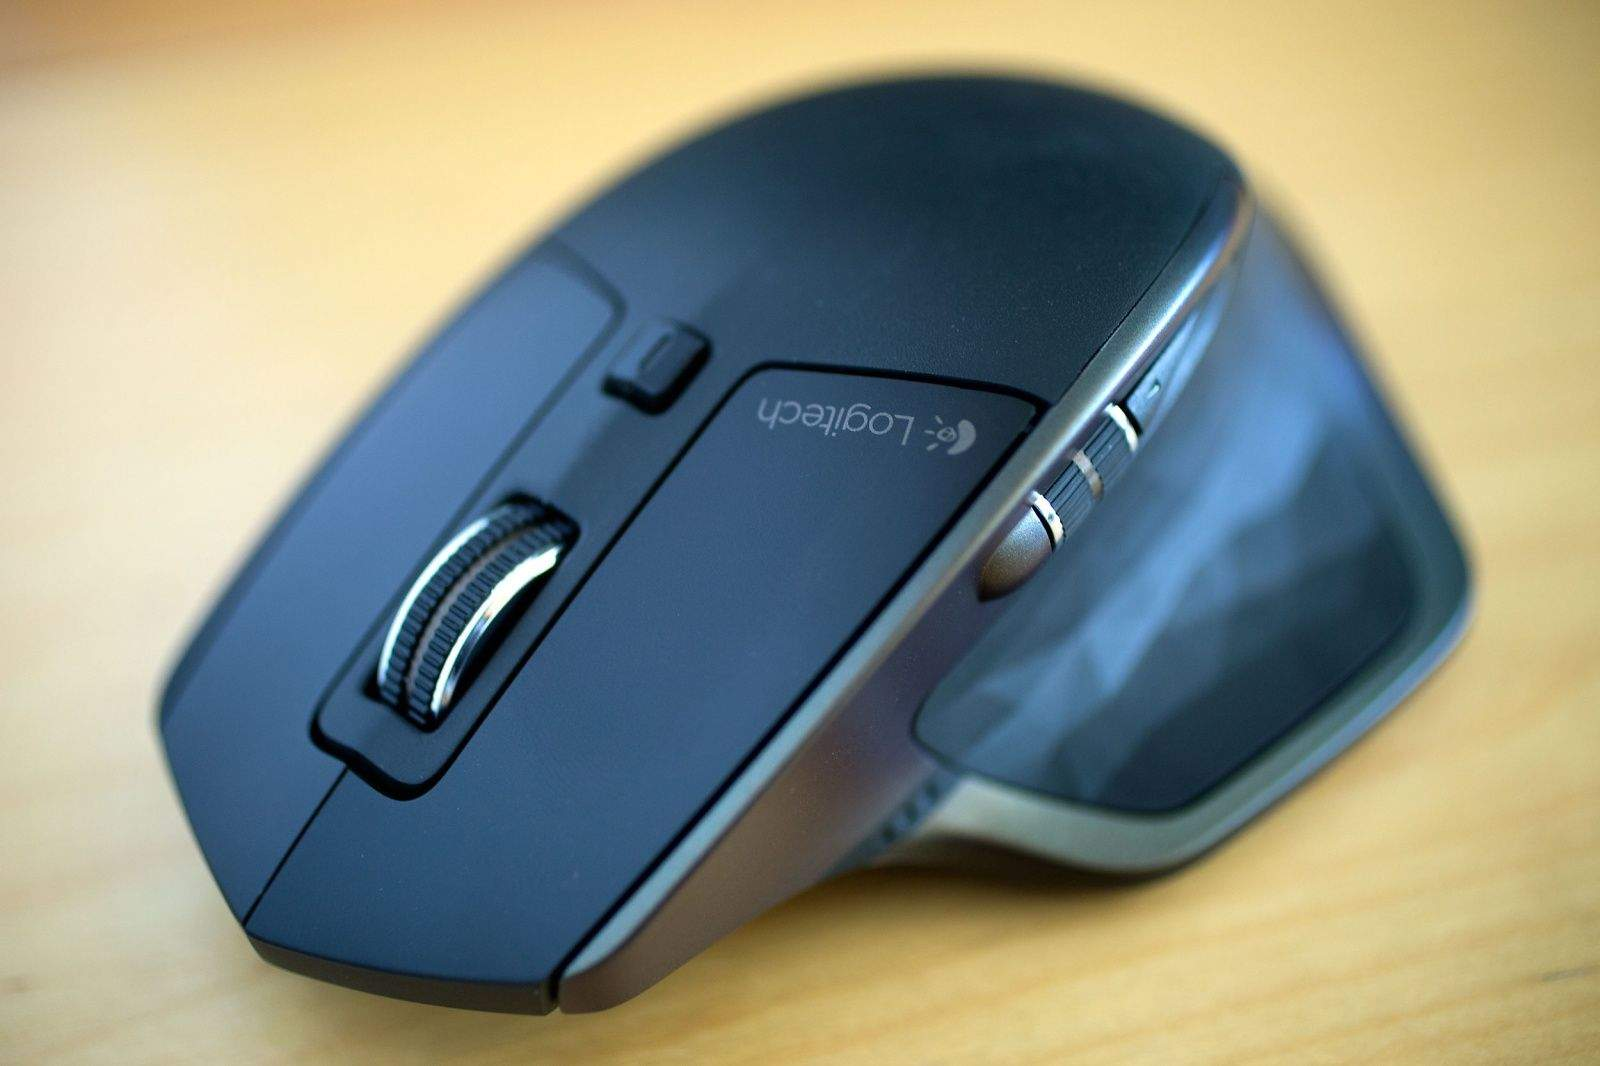 The top of the Logitech MX Master mouse.